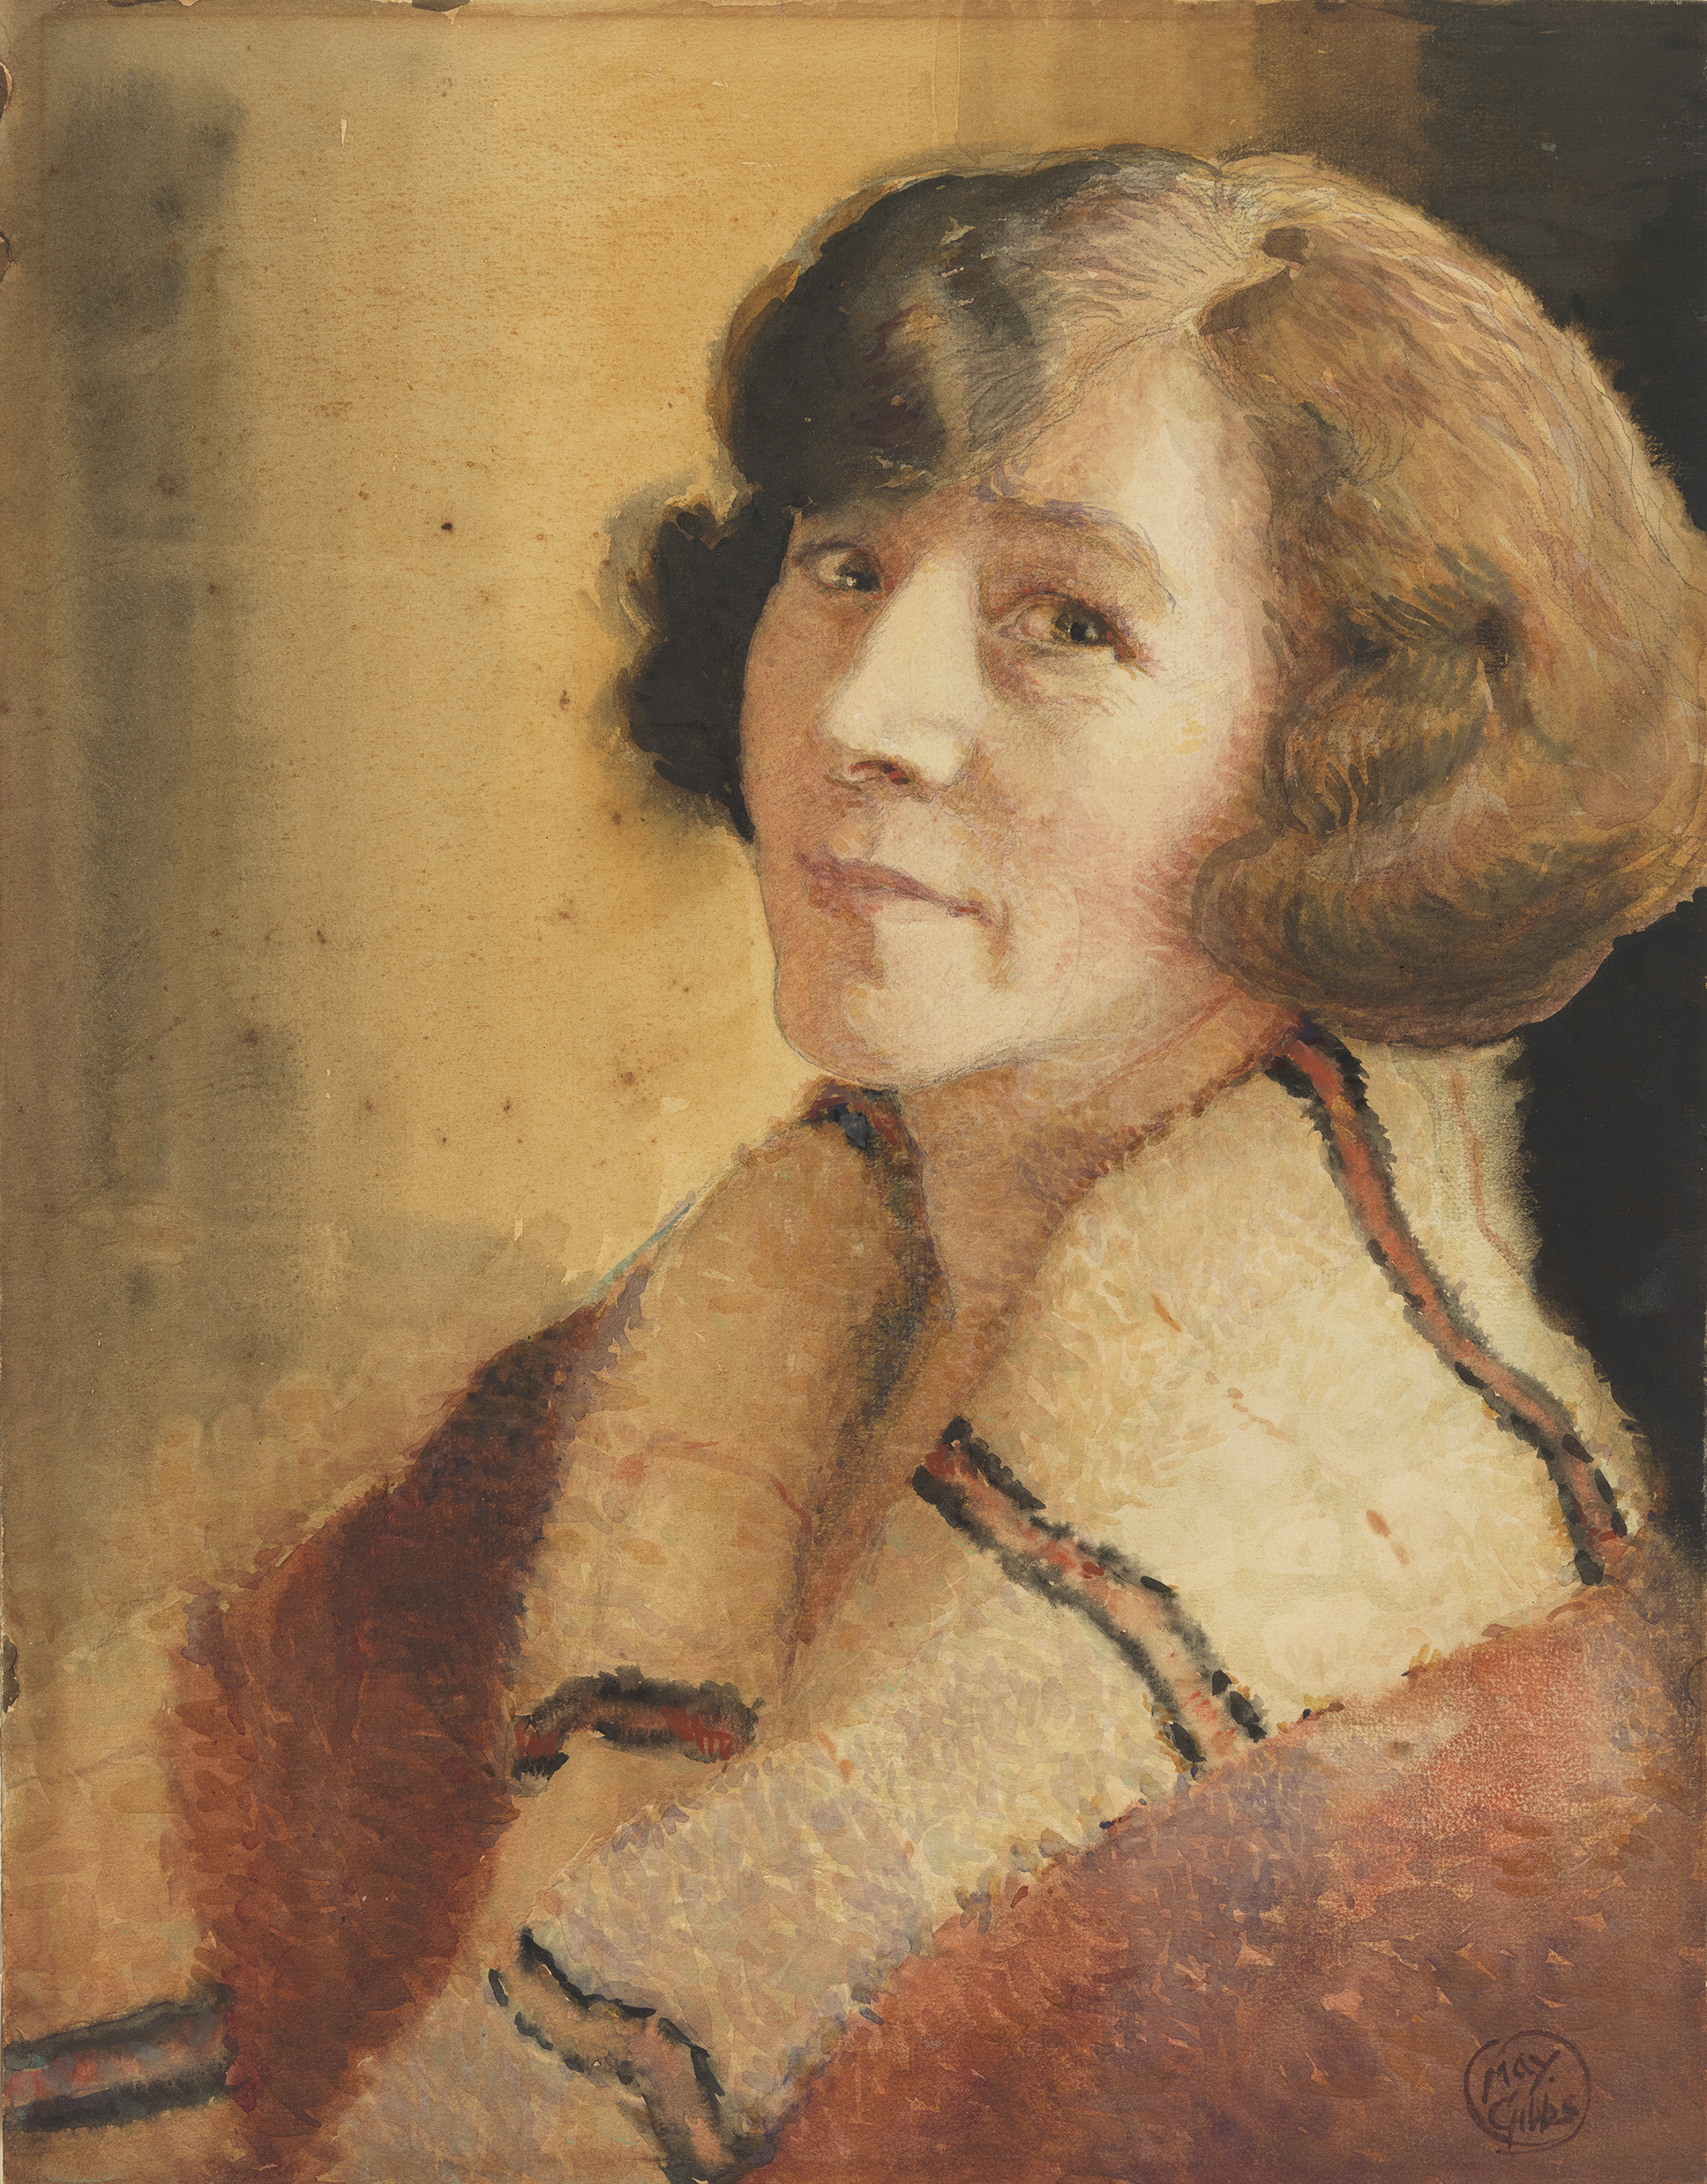 A painting of warm brown, yellow and orange tones depicts a middle-aged caucasian woman with short brow hair looking directly at the viewer.